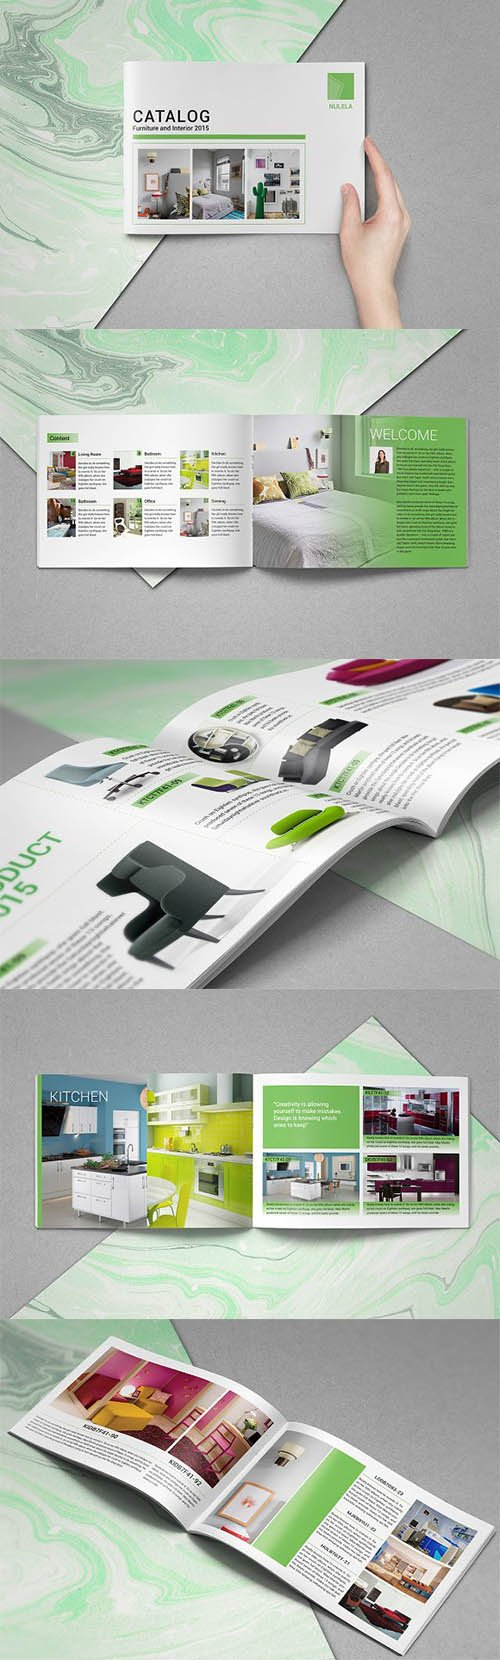 CreativeMarket - Product Catalogs Brochure 2219543